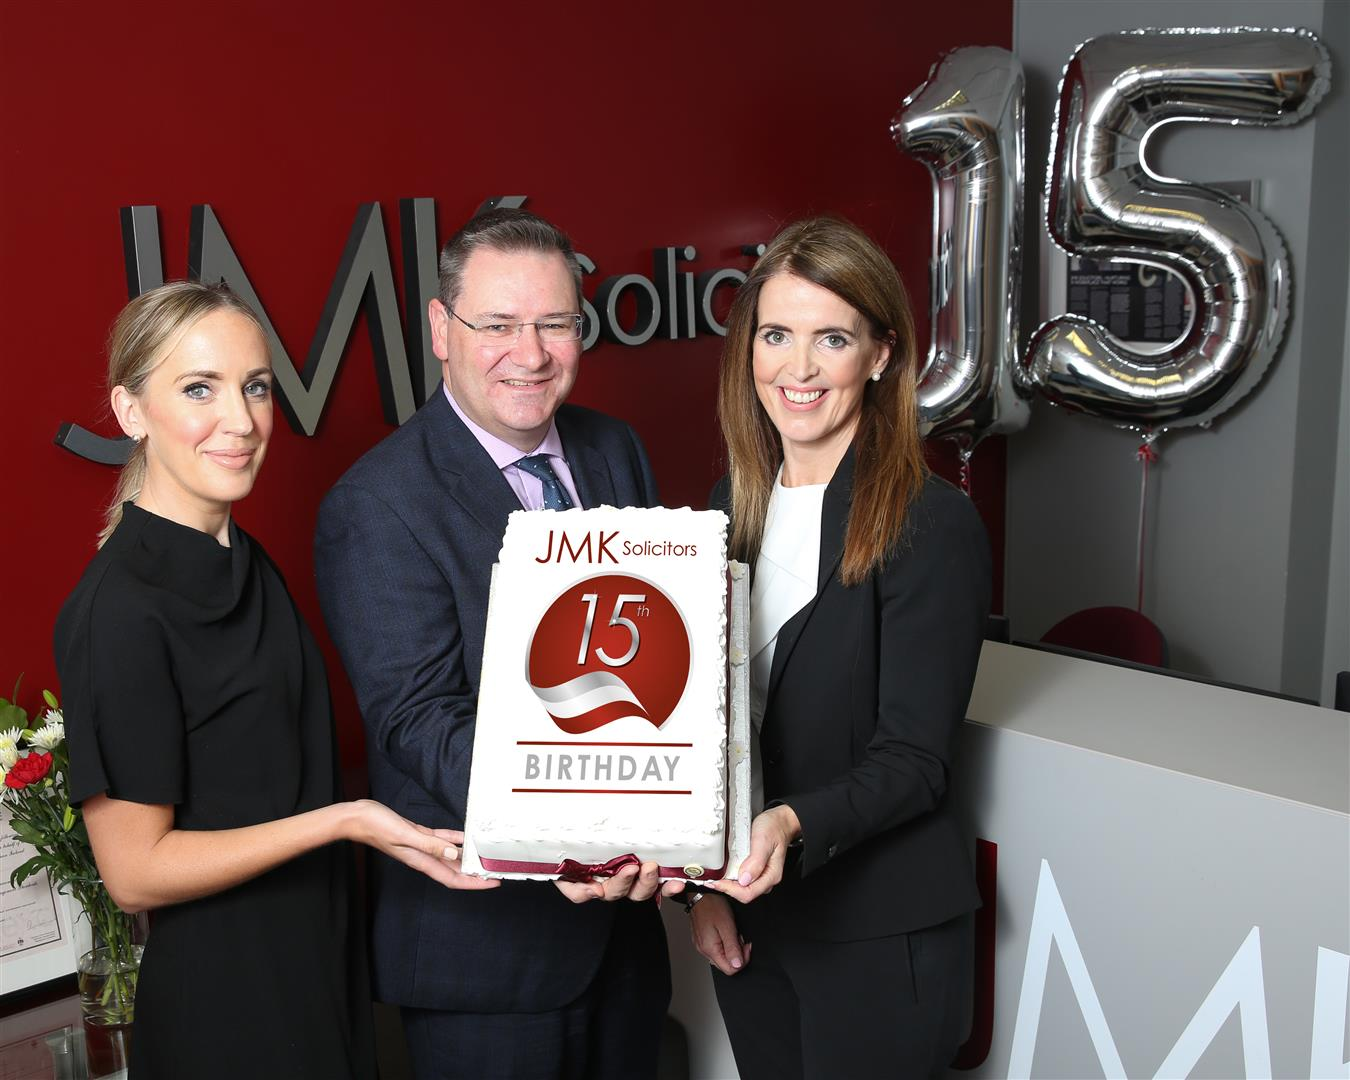 MK Solicitors 15th Birthday picture